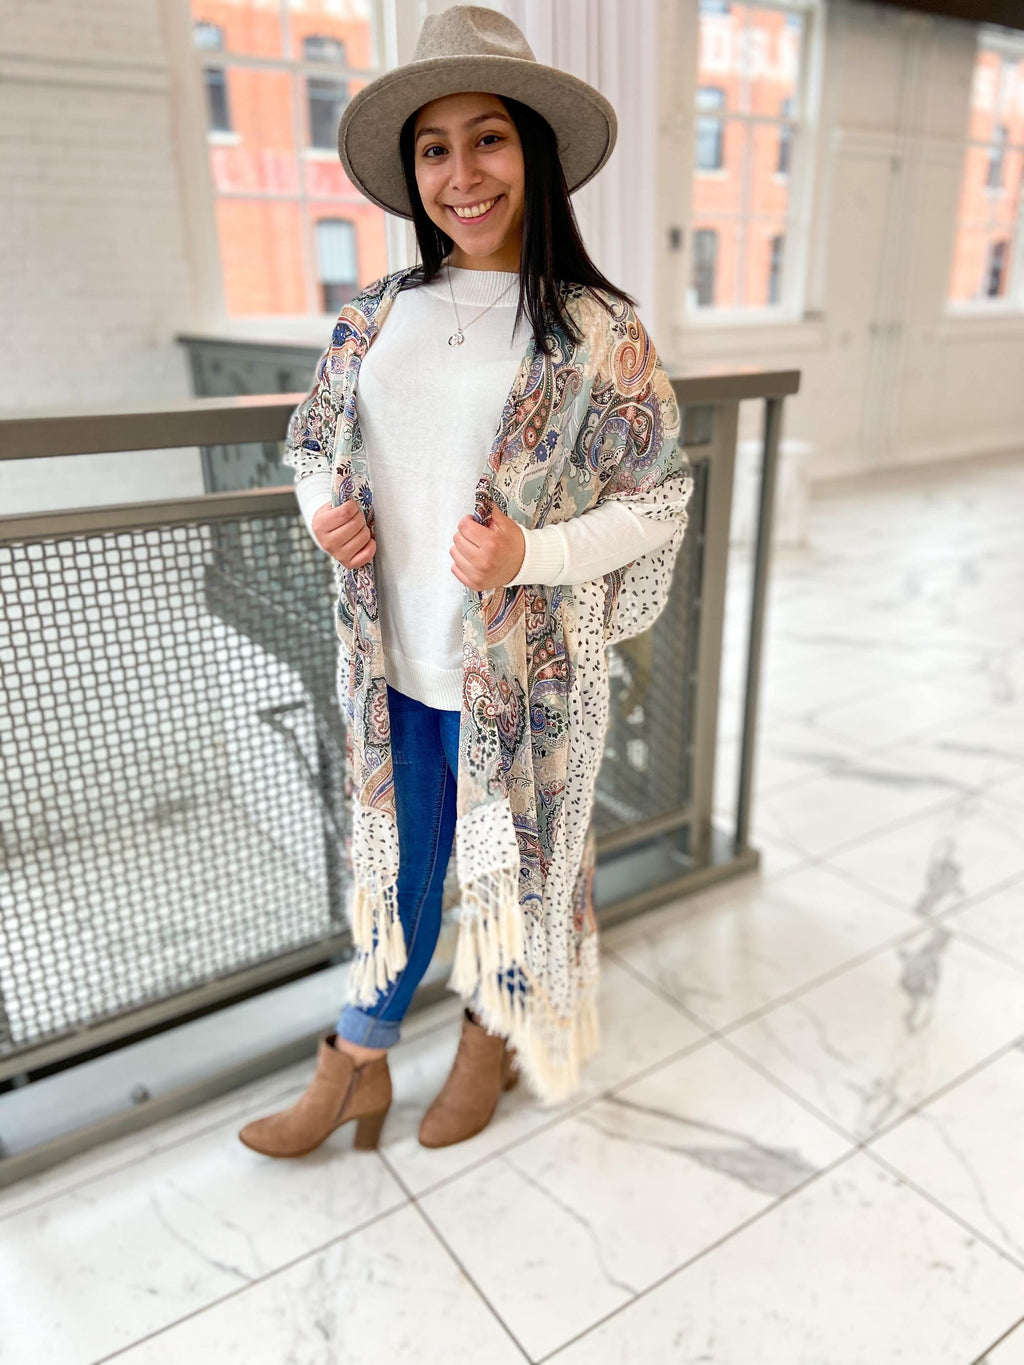 Paisley Print Floral Kimono with Fringe - Trendsetters Fashion Boutique